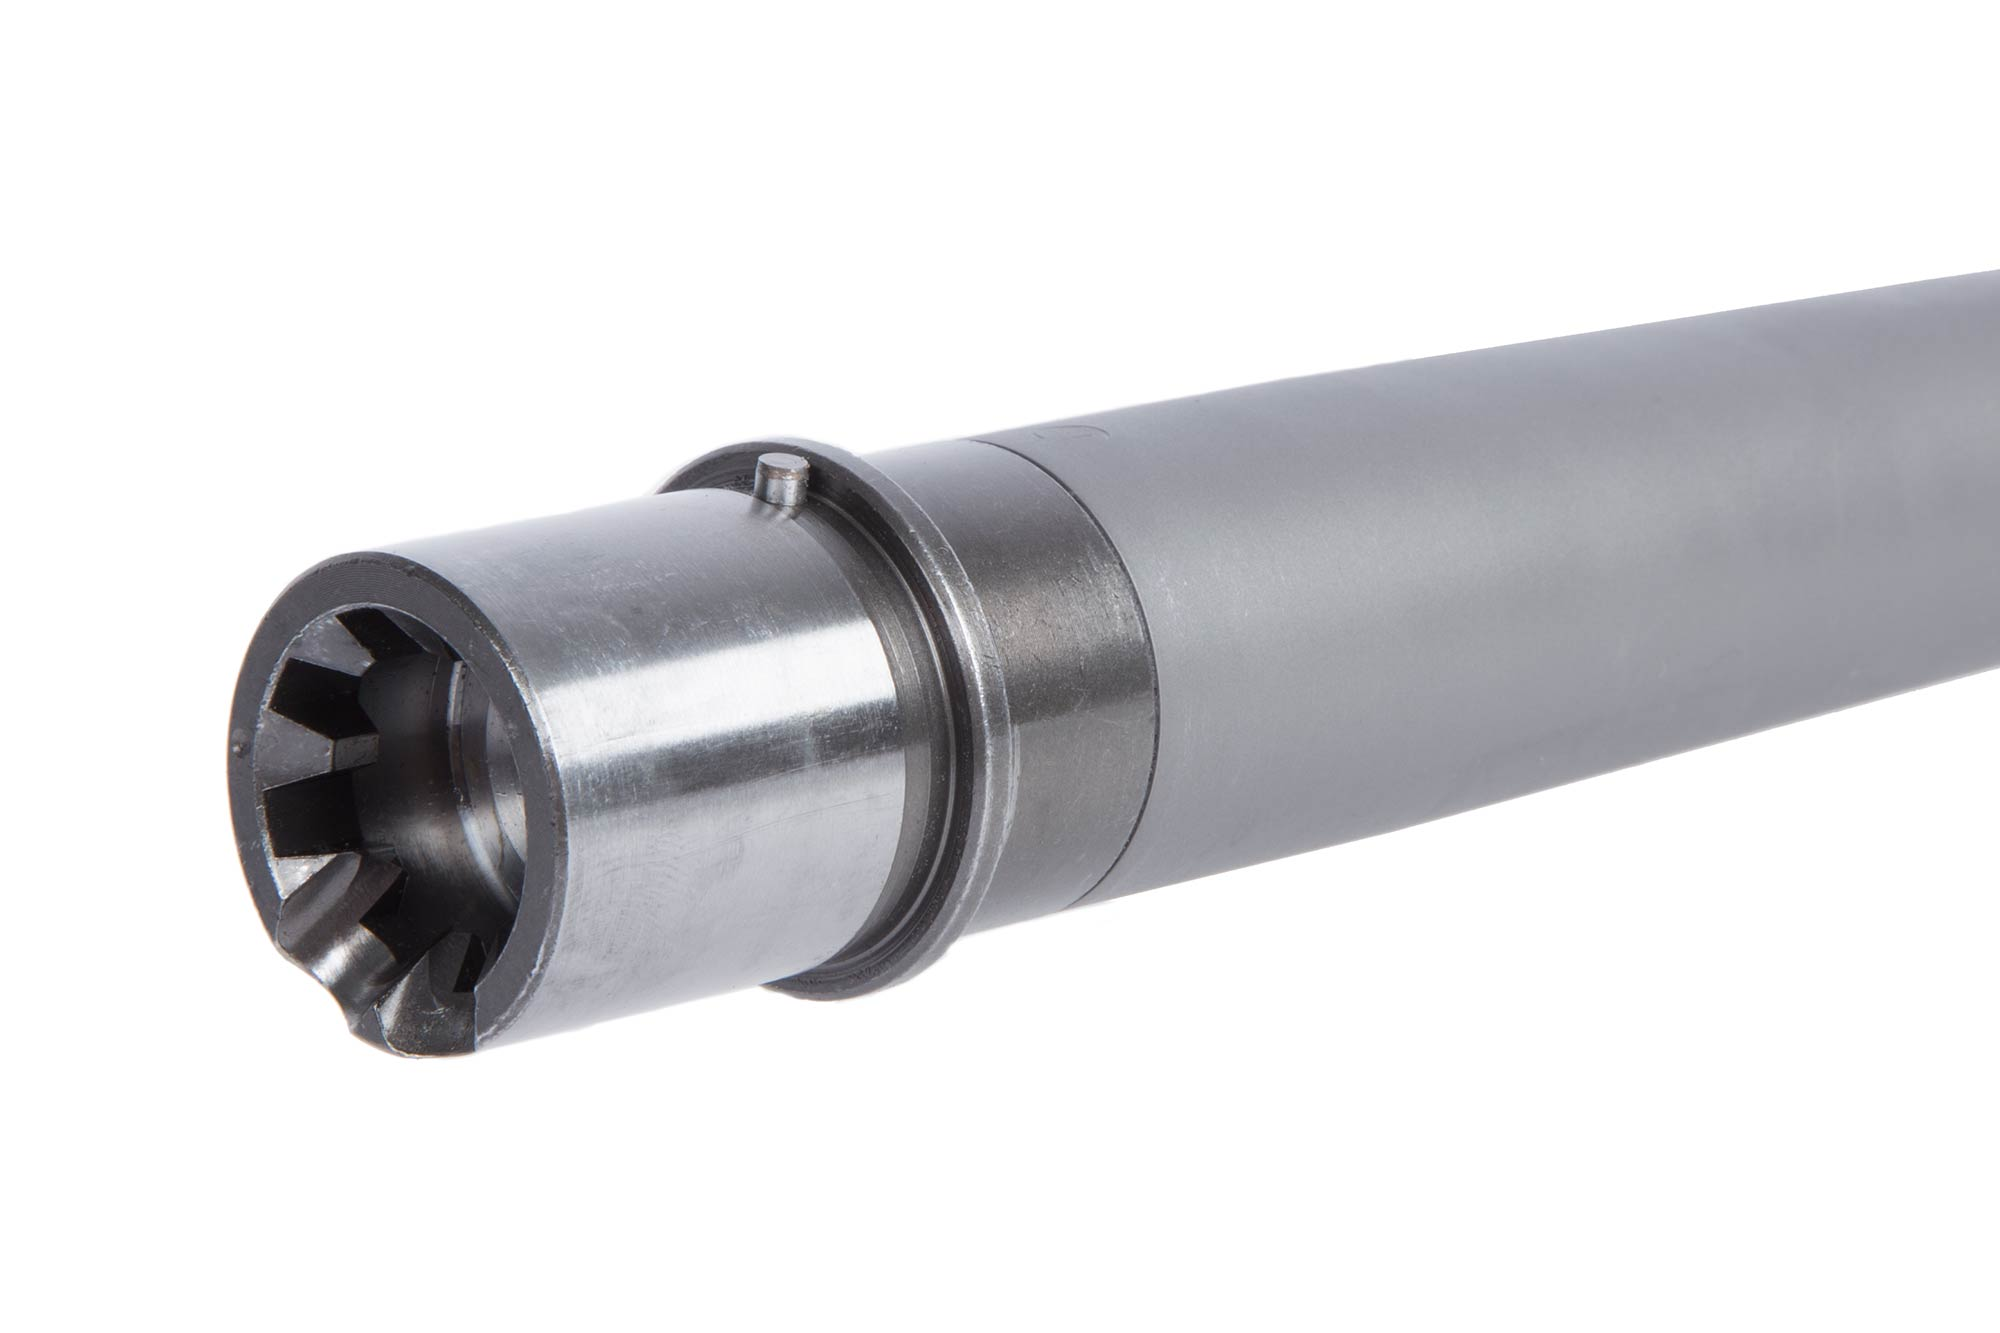 Ballistic Advantage AR-10 20 308, 1:10 Twist Rate, Rifle Gas System Barrel- 5/8x24, Stainless Matte Finish